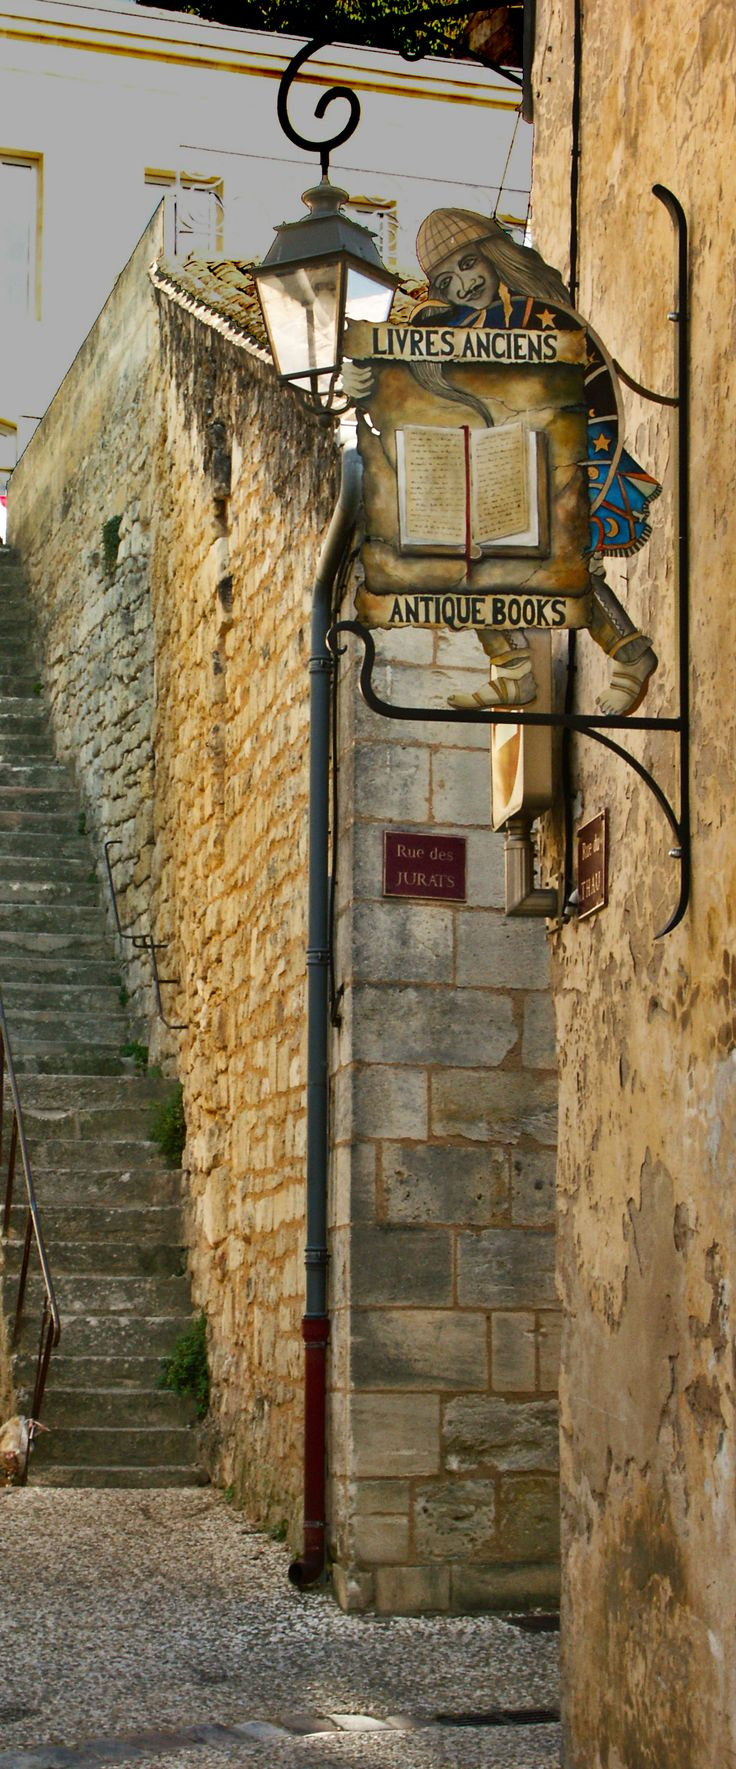 St Emilion book sign. Antique bookstore sign in St. Emilion. Not just wine in St. Emilion but a good book and a glass of wine is a good combination.